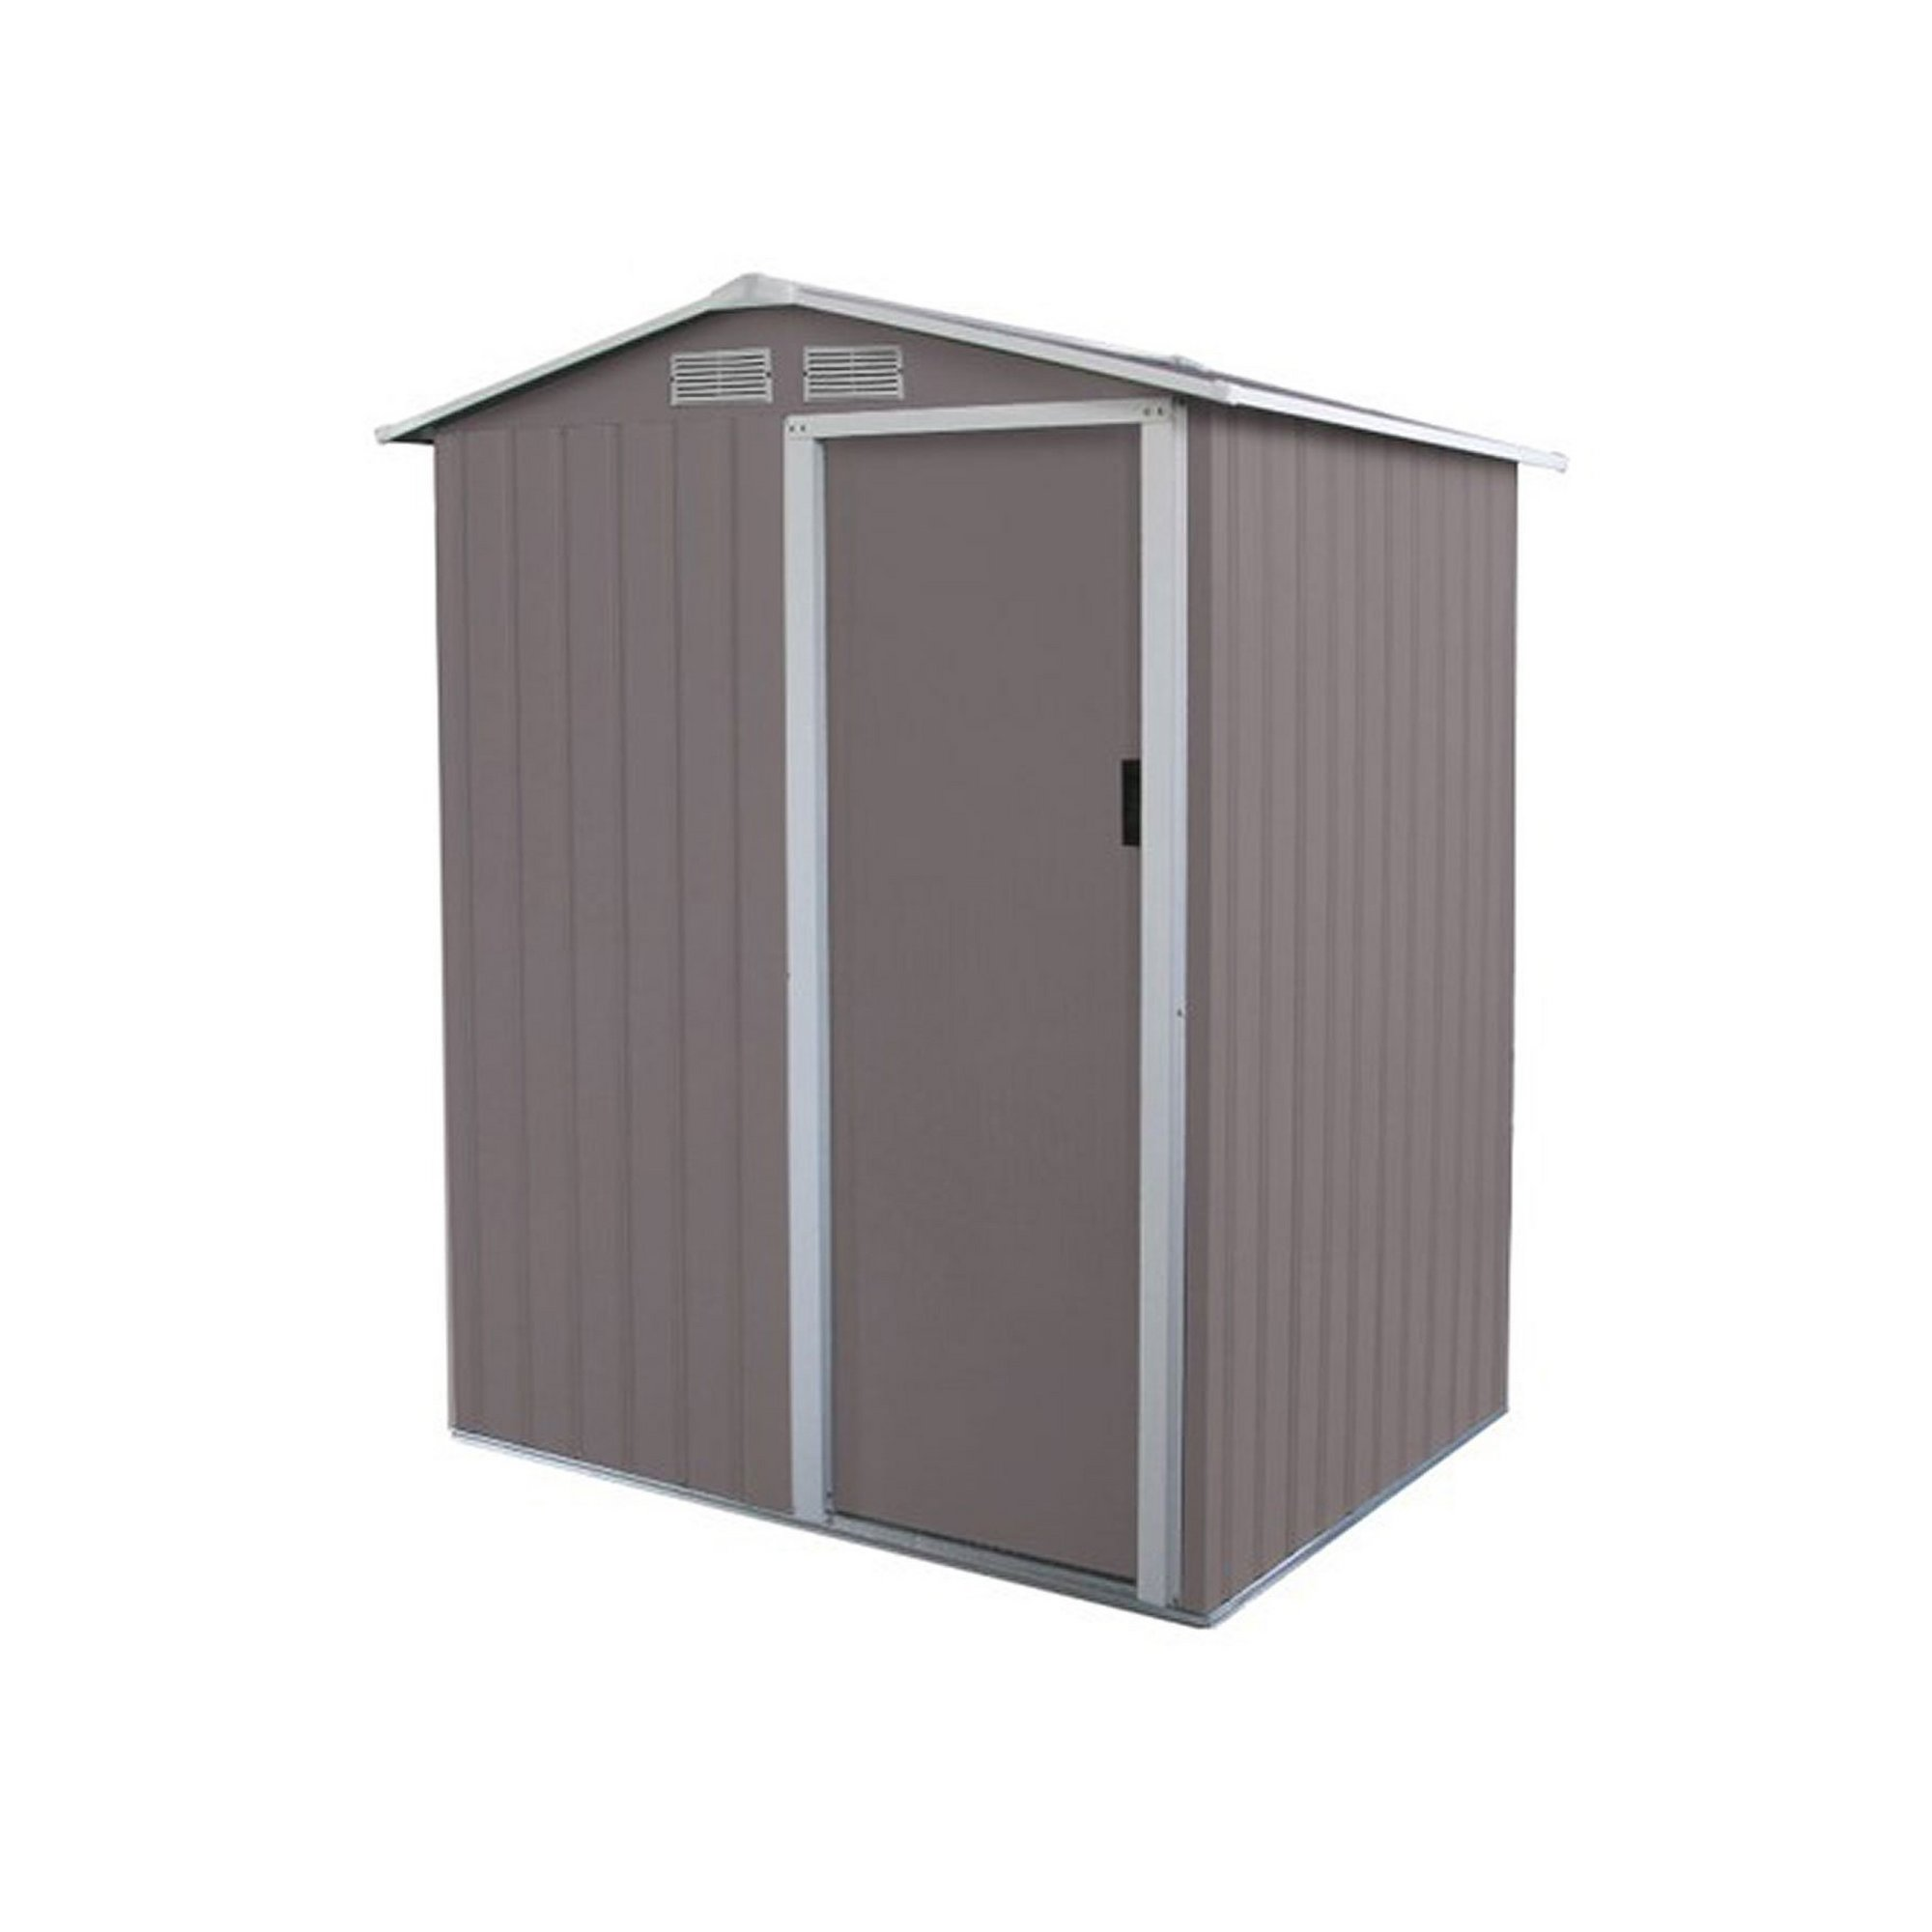 Image of 4.9 x 4.3Ft Metal Shed